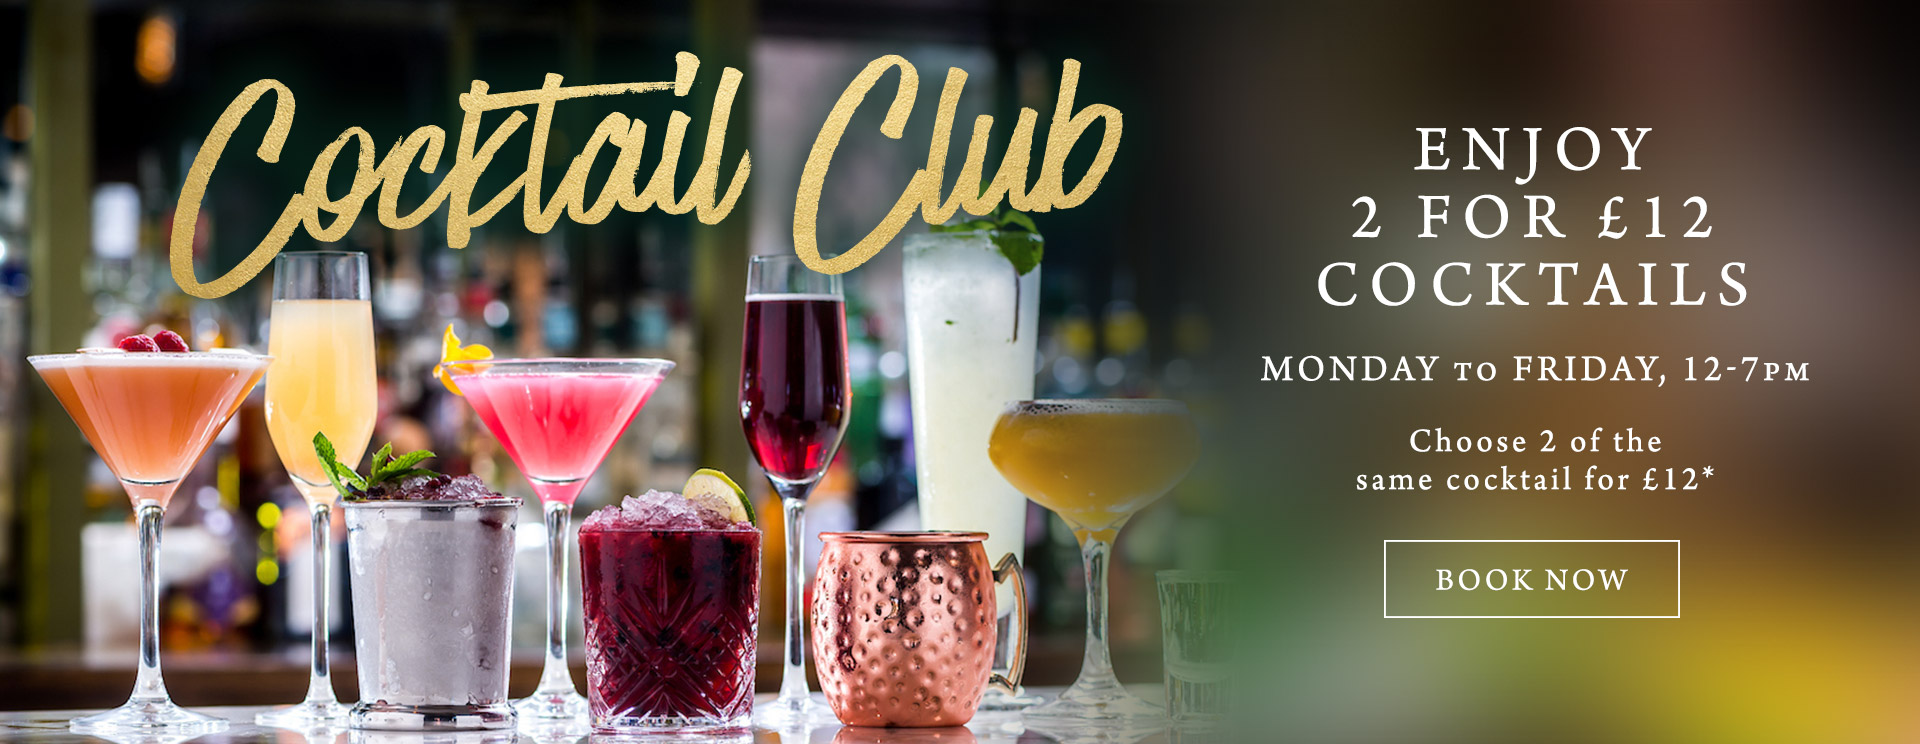 2 for £12 cocktails at The Chilworth Arms